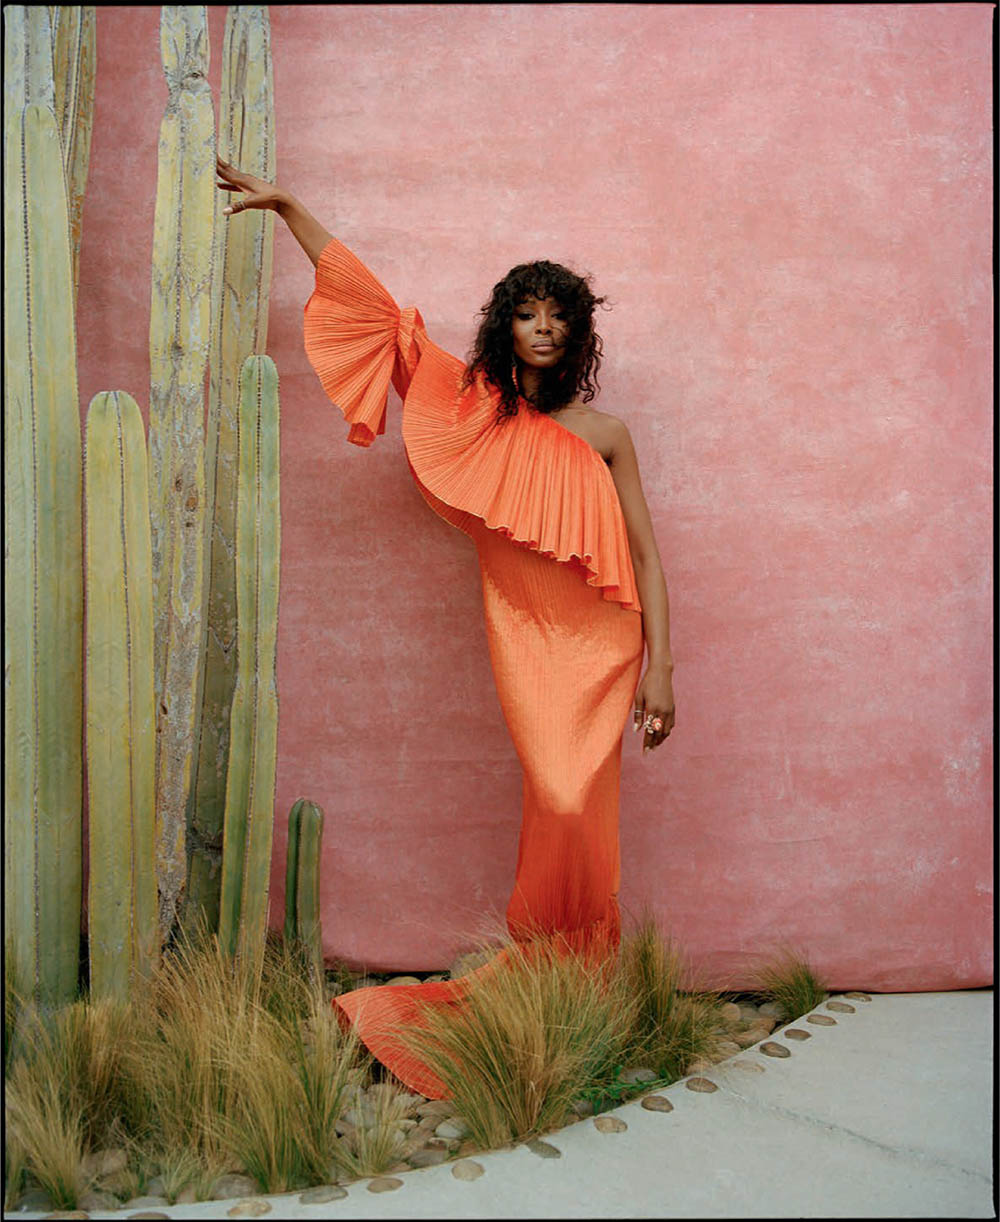 Naomi Campbell covers Vogue Spain July 2020 by Nadine Ijewere